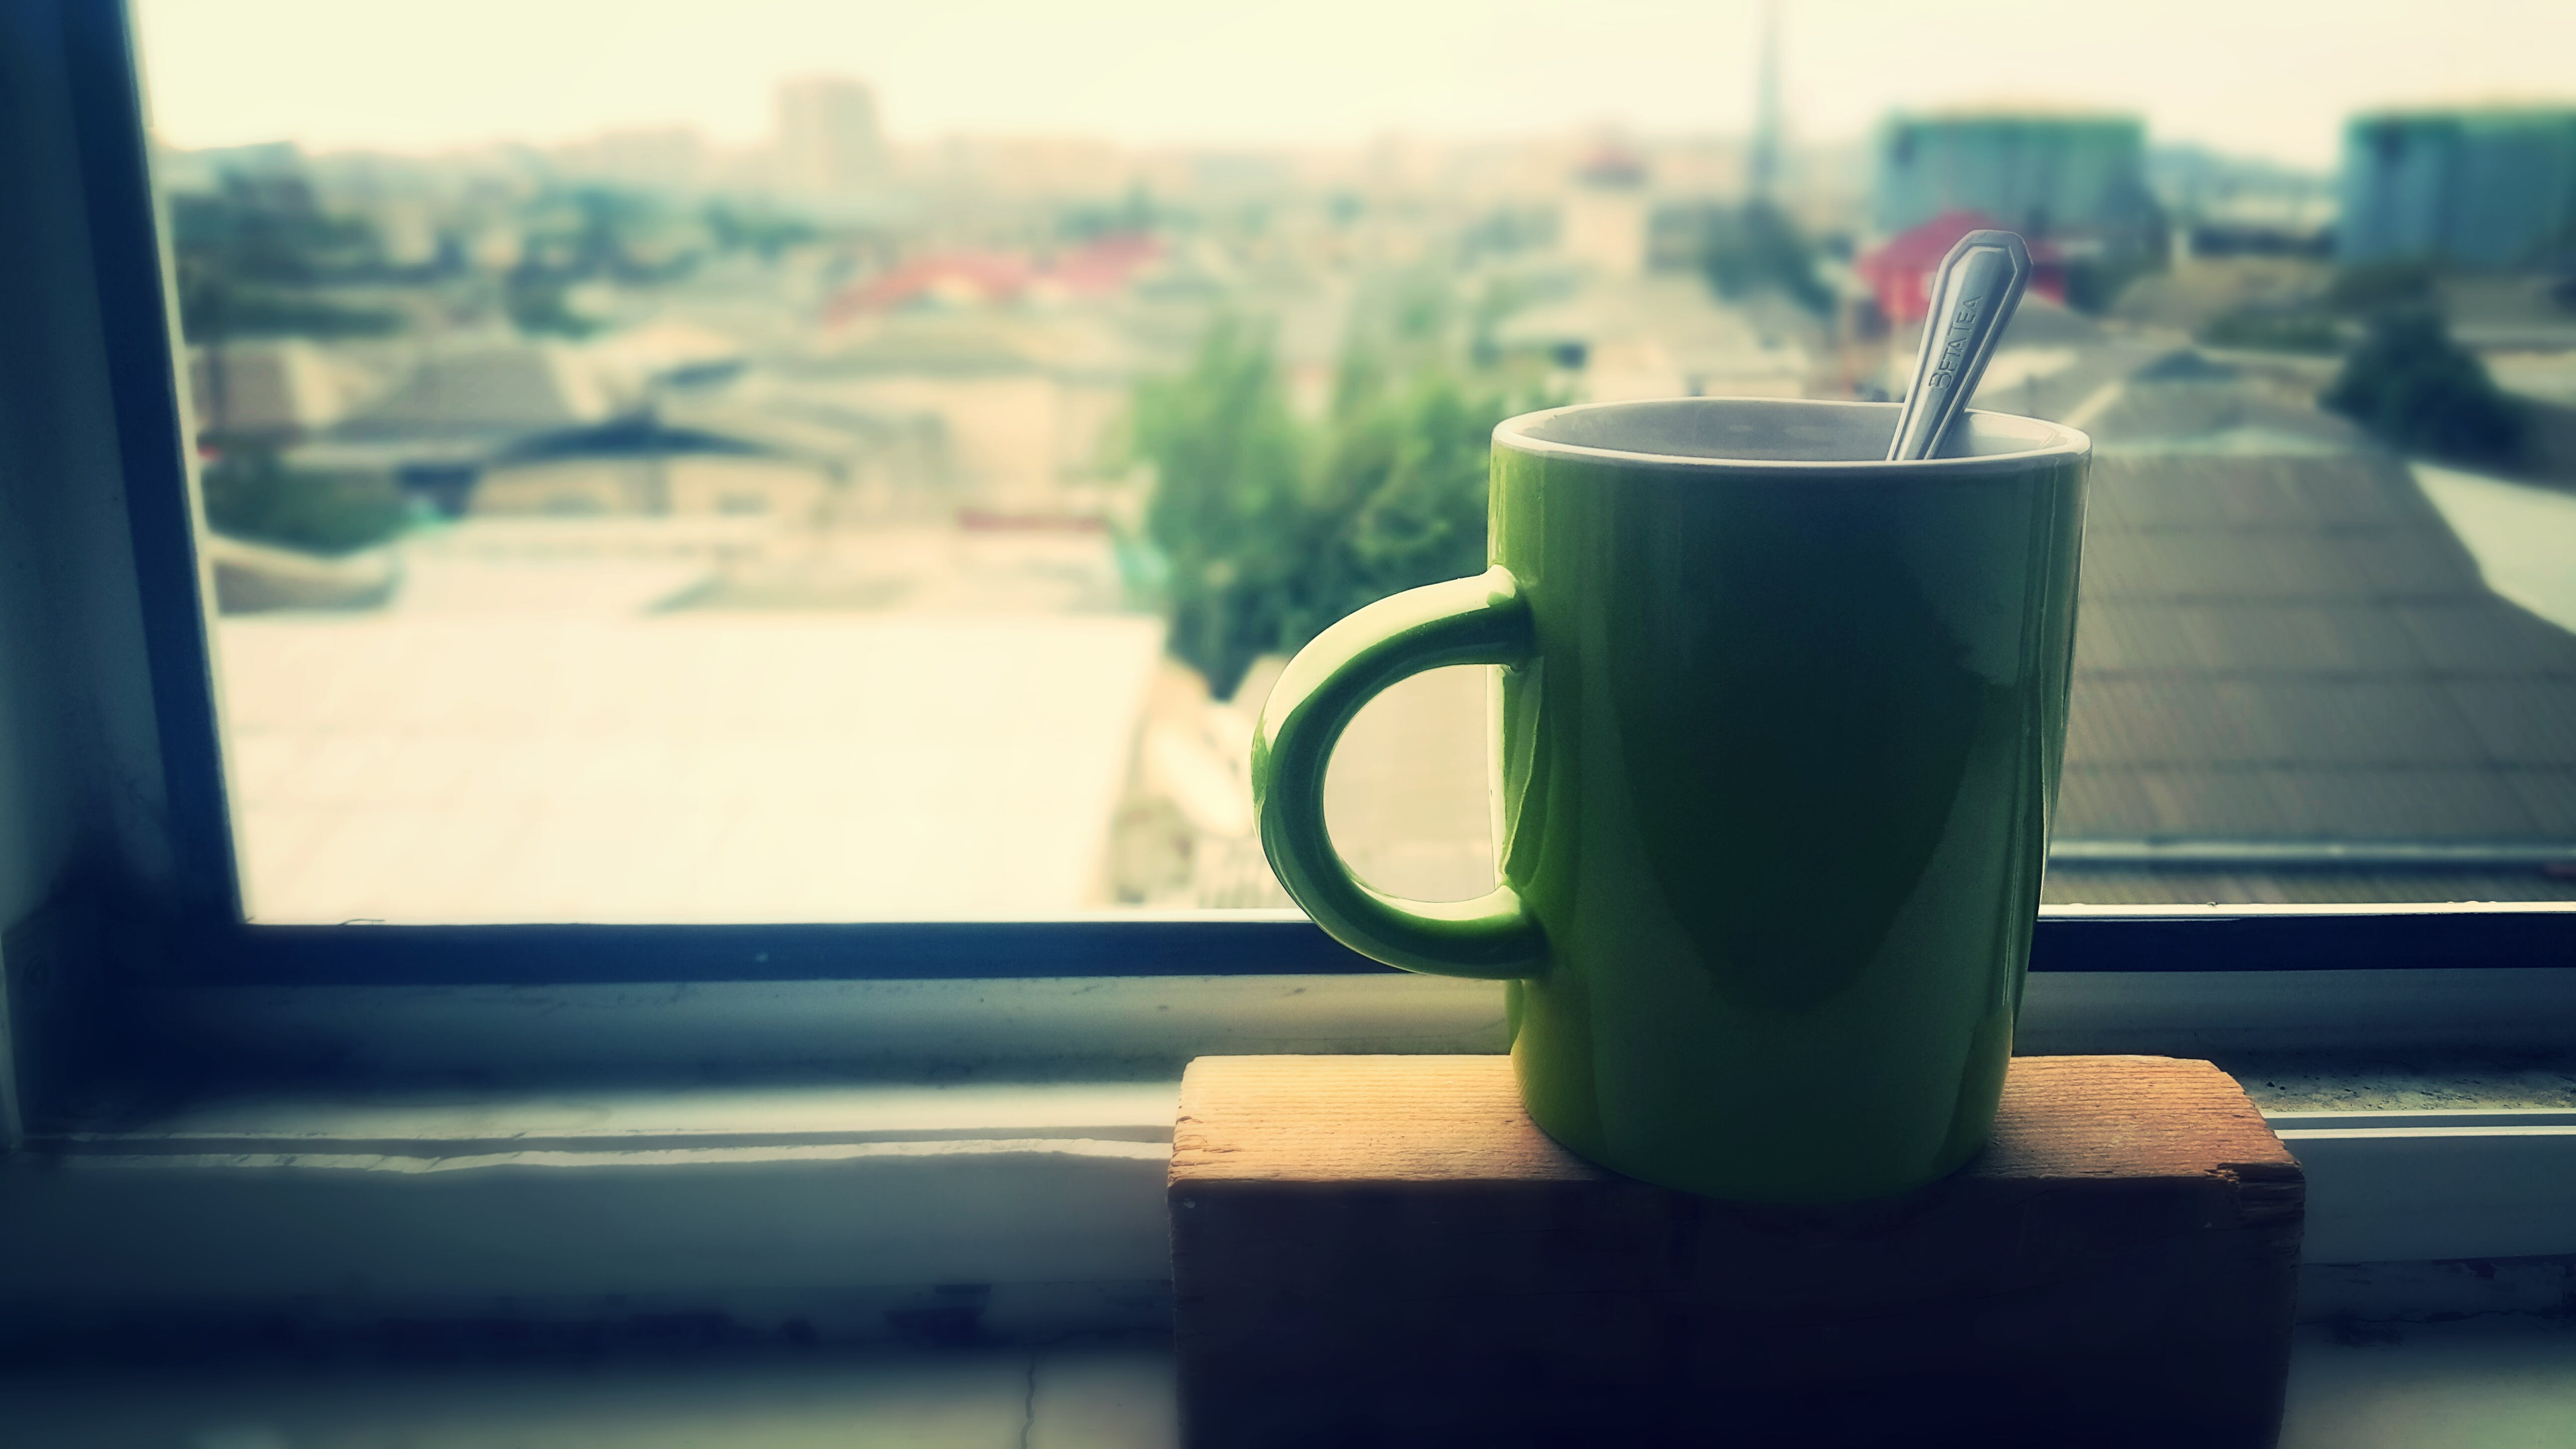 Free stock photo of cup, mug, drink, view